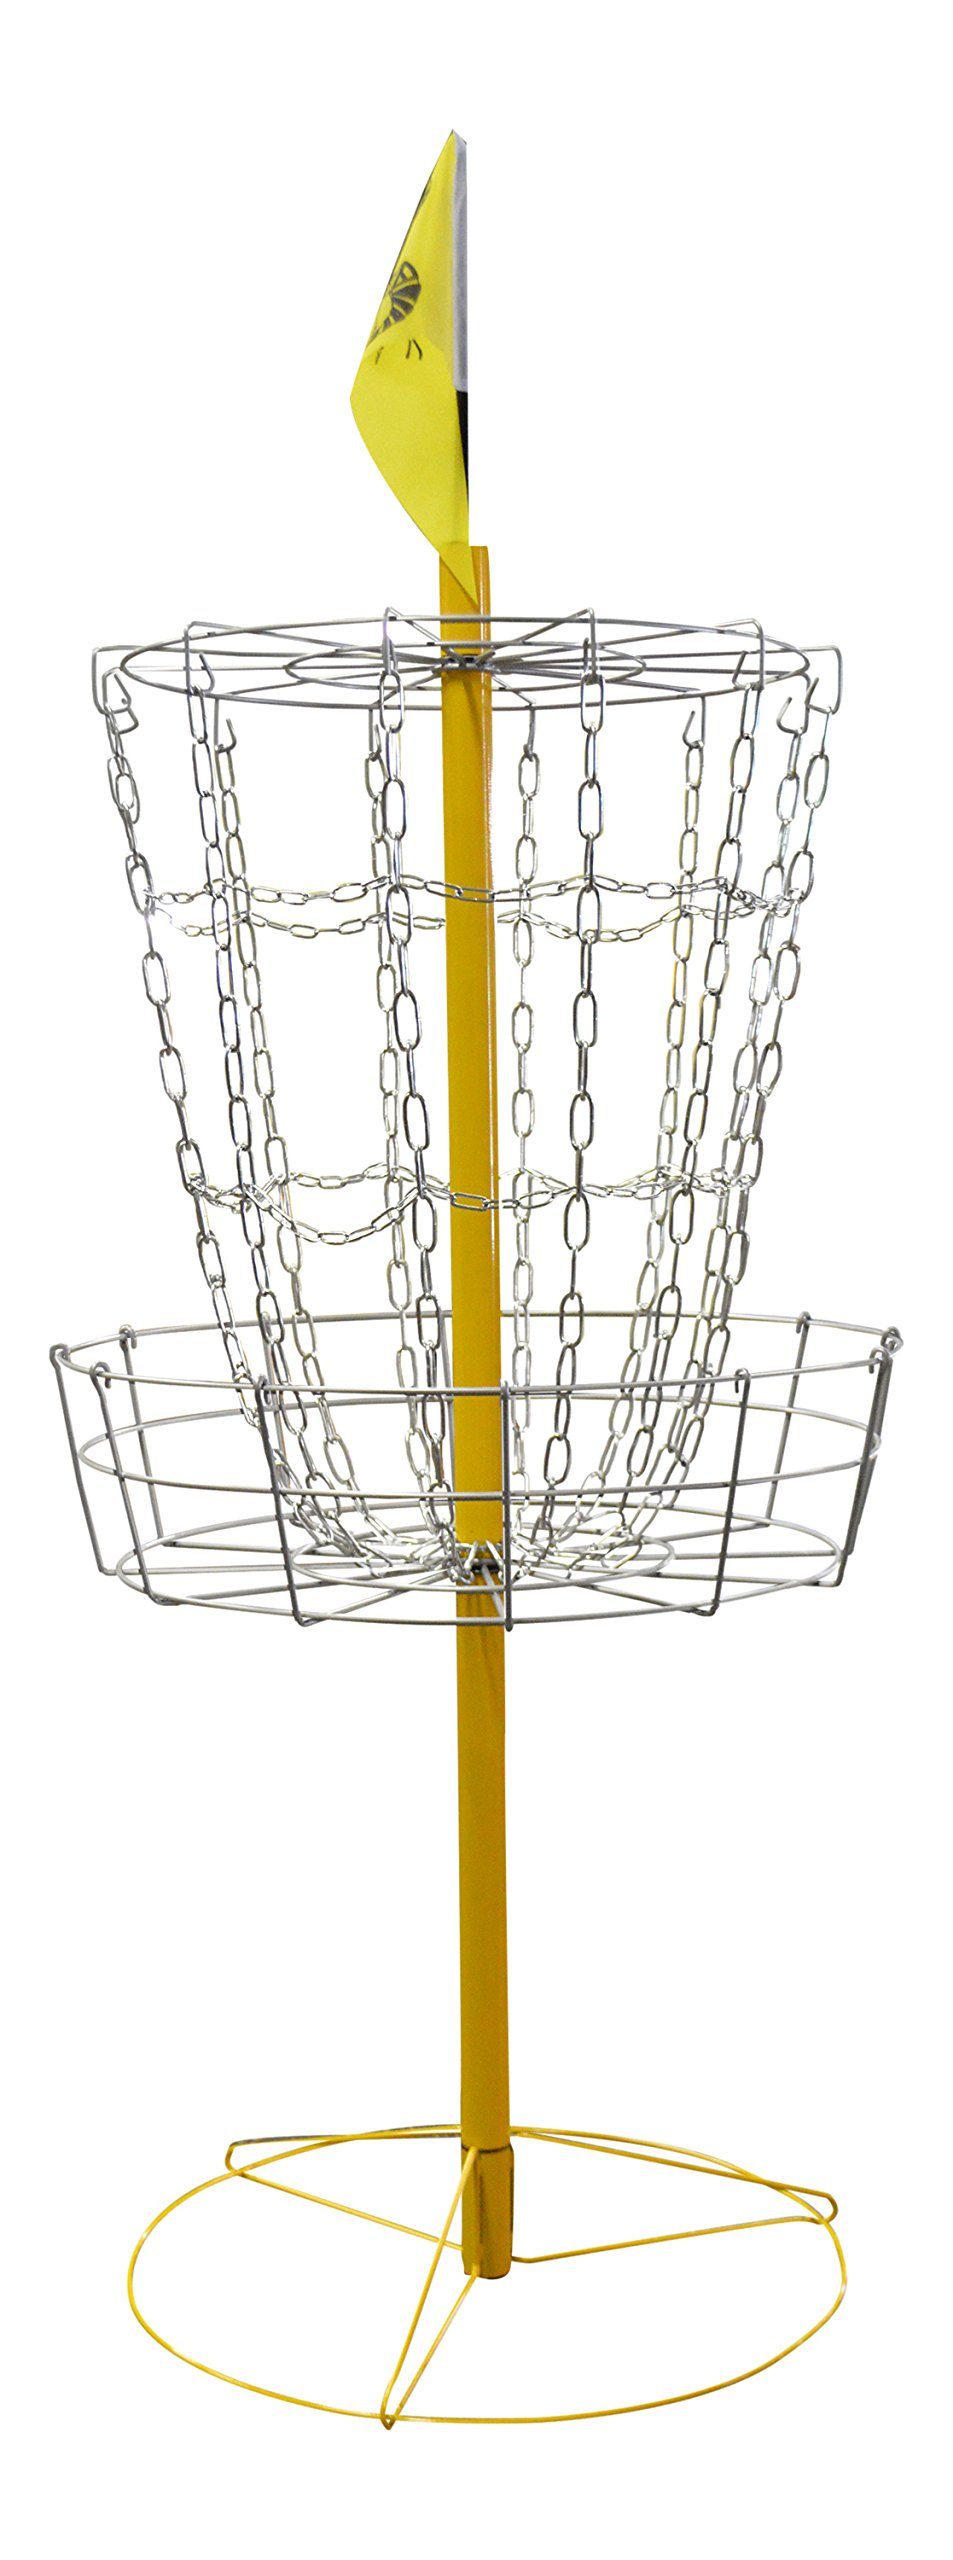 The Hive Disc Golf Practice Basket Cross Chains by the Hive